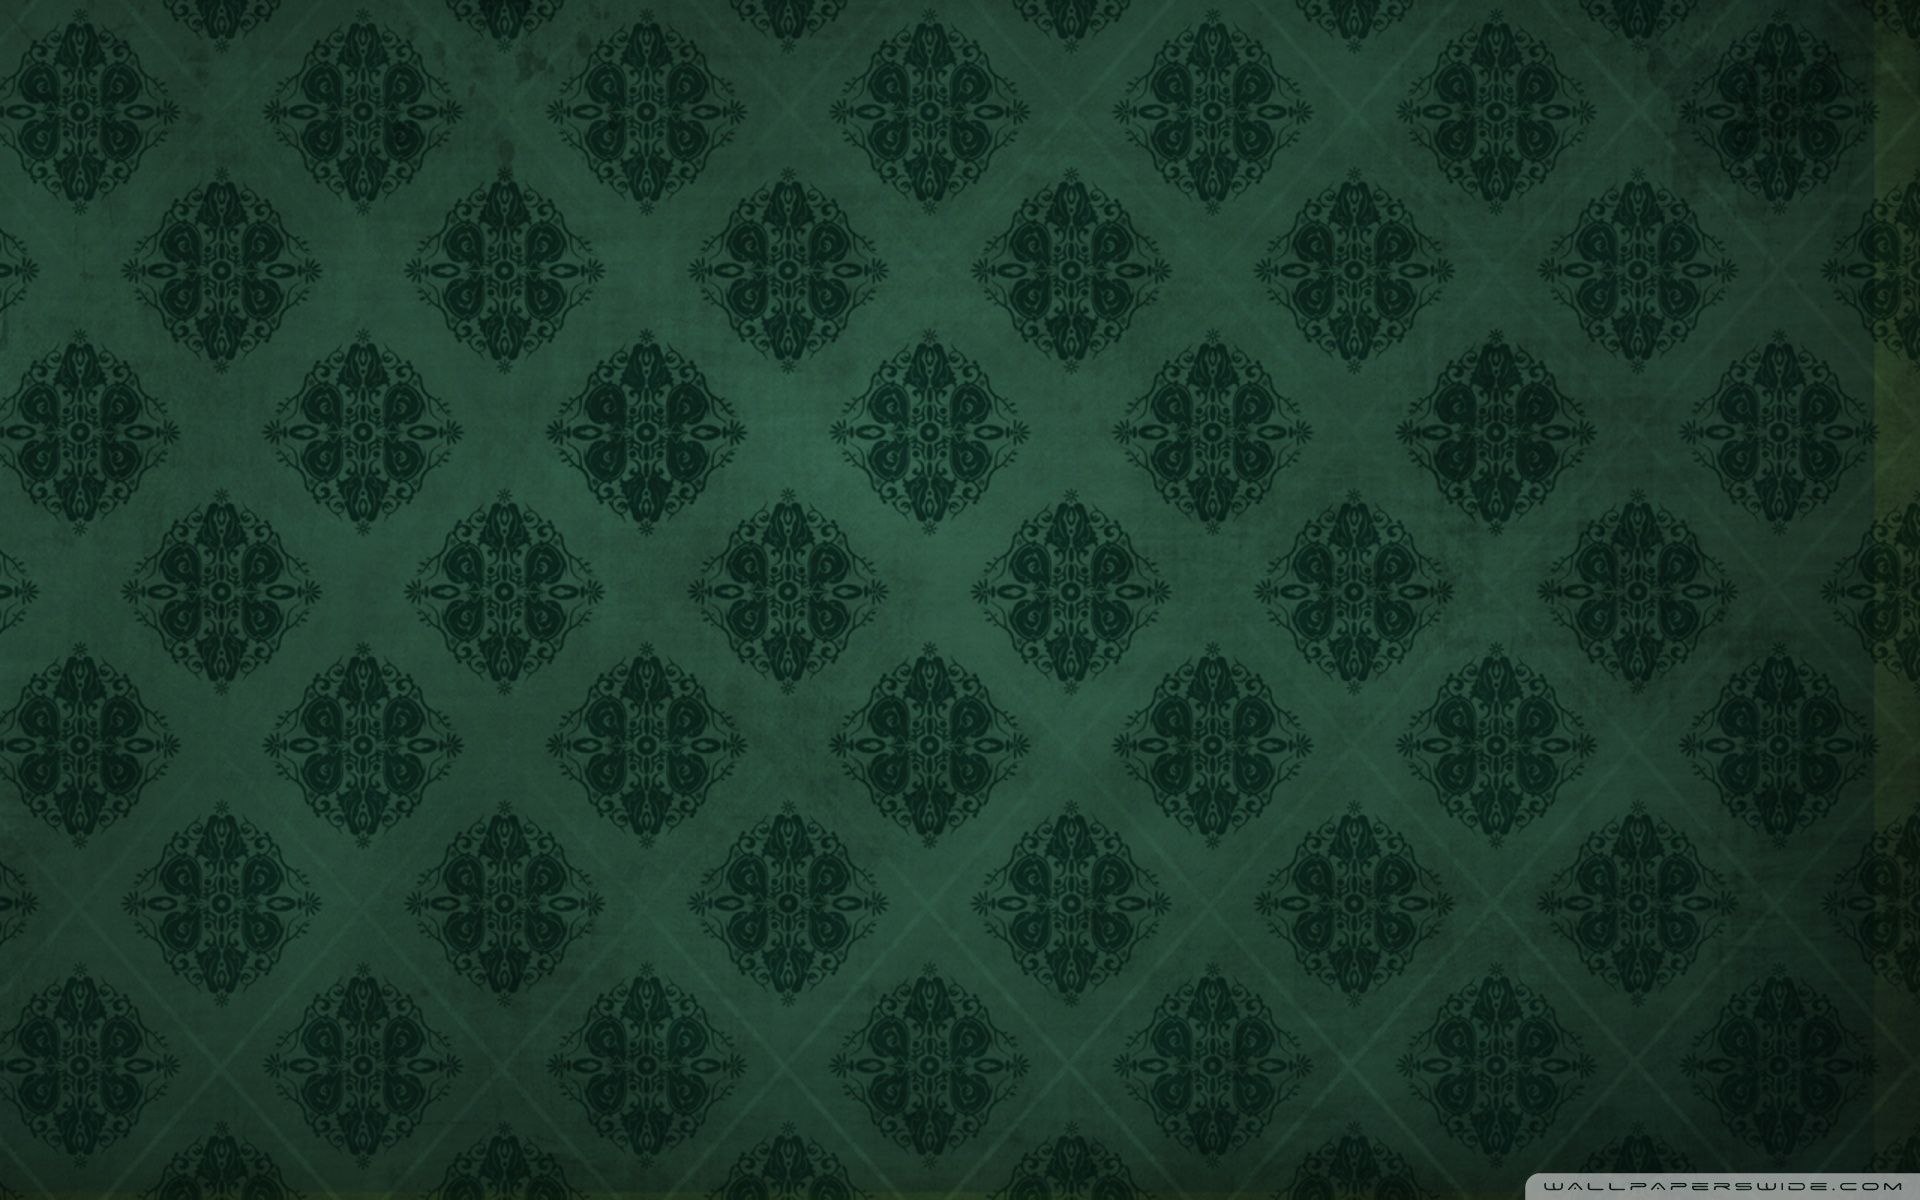 Damask 4k Wallpapers For Your Desktop Or Mobile Screen Free And